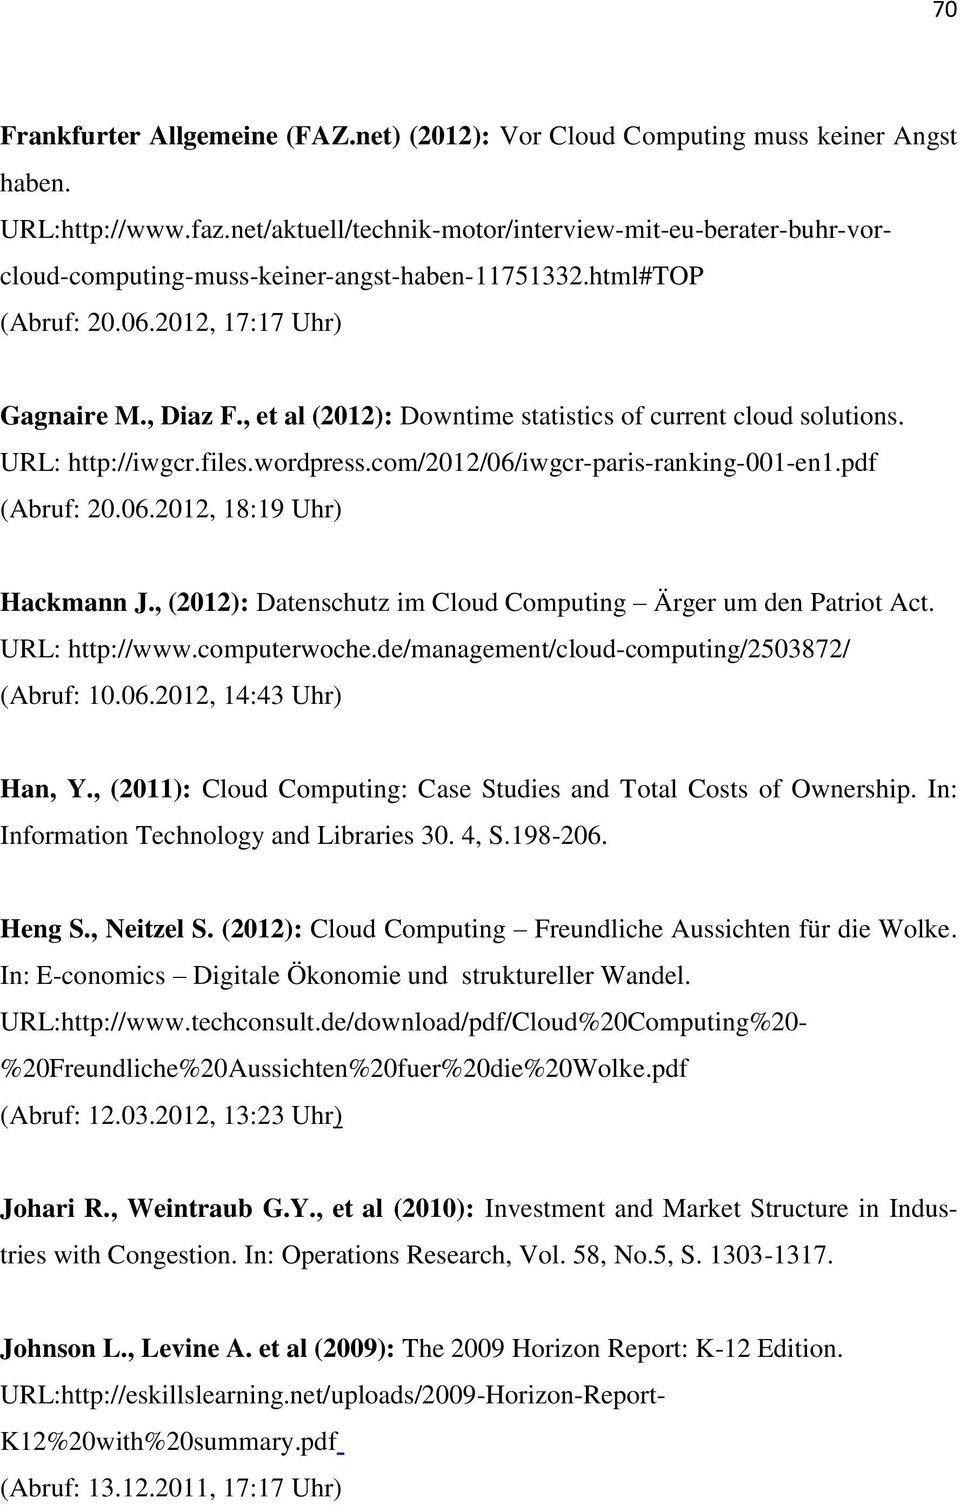 , (2011): Cloud Computing: Case Studies and Total Costs of Ownership. In: Information Technology and Libraries 30. 4, S.198-206. Frankfurter Allgemeine (FAZ.